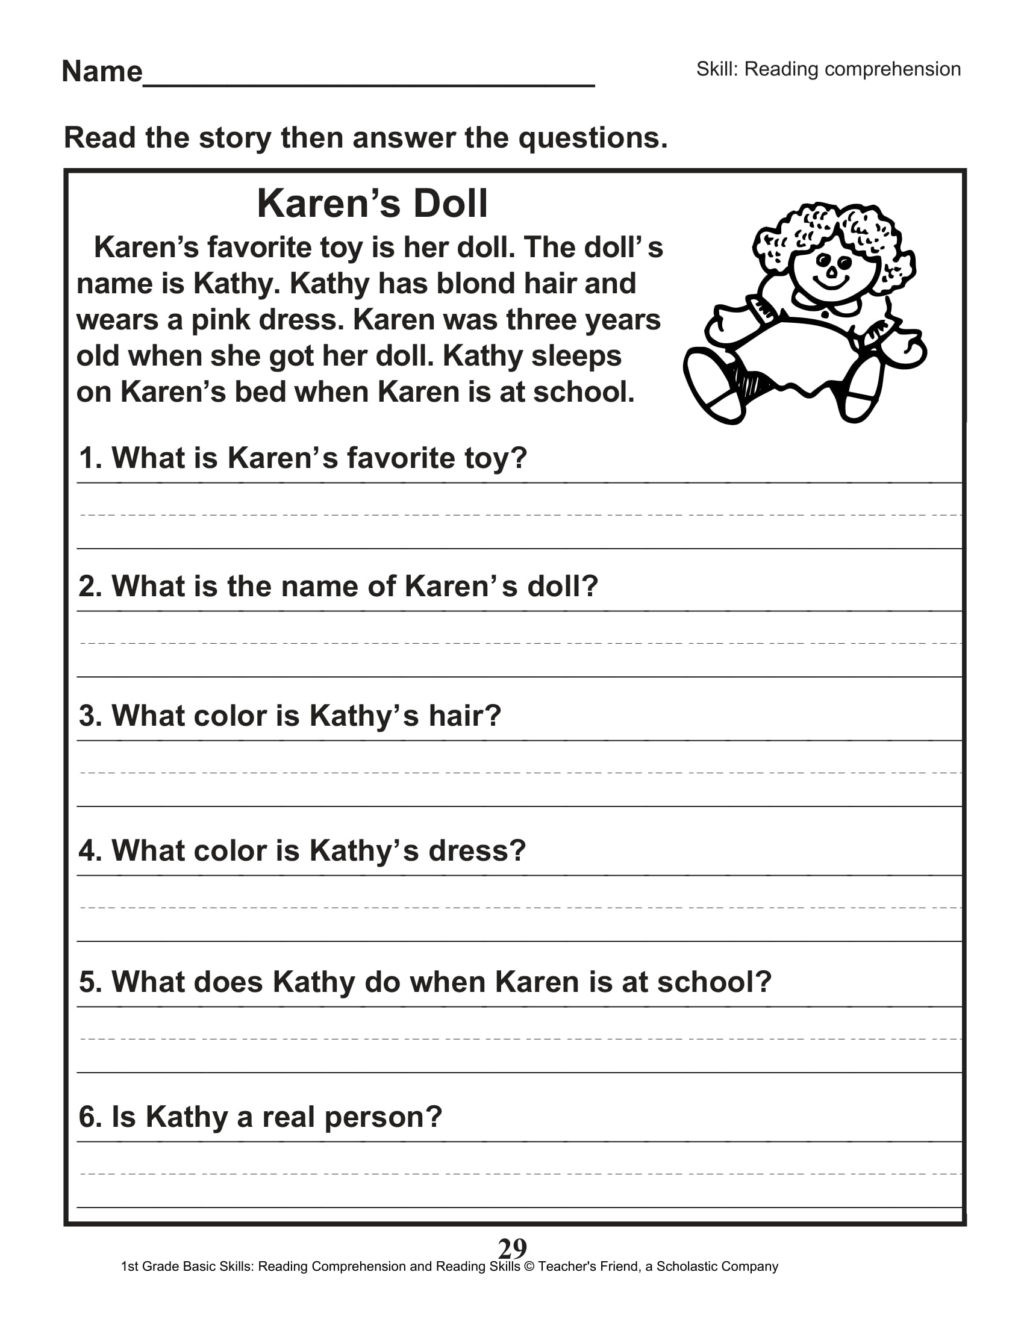 Reading Comprehension Worksheets 7th Grade Worksheet 1st Grade Reading Prehension Worksheets Pdf